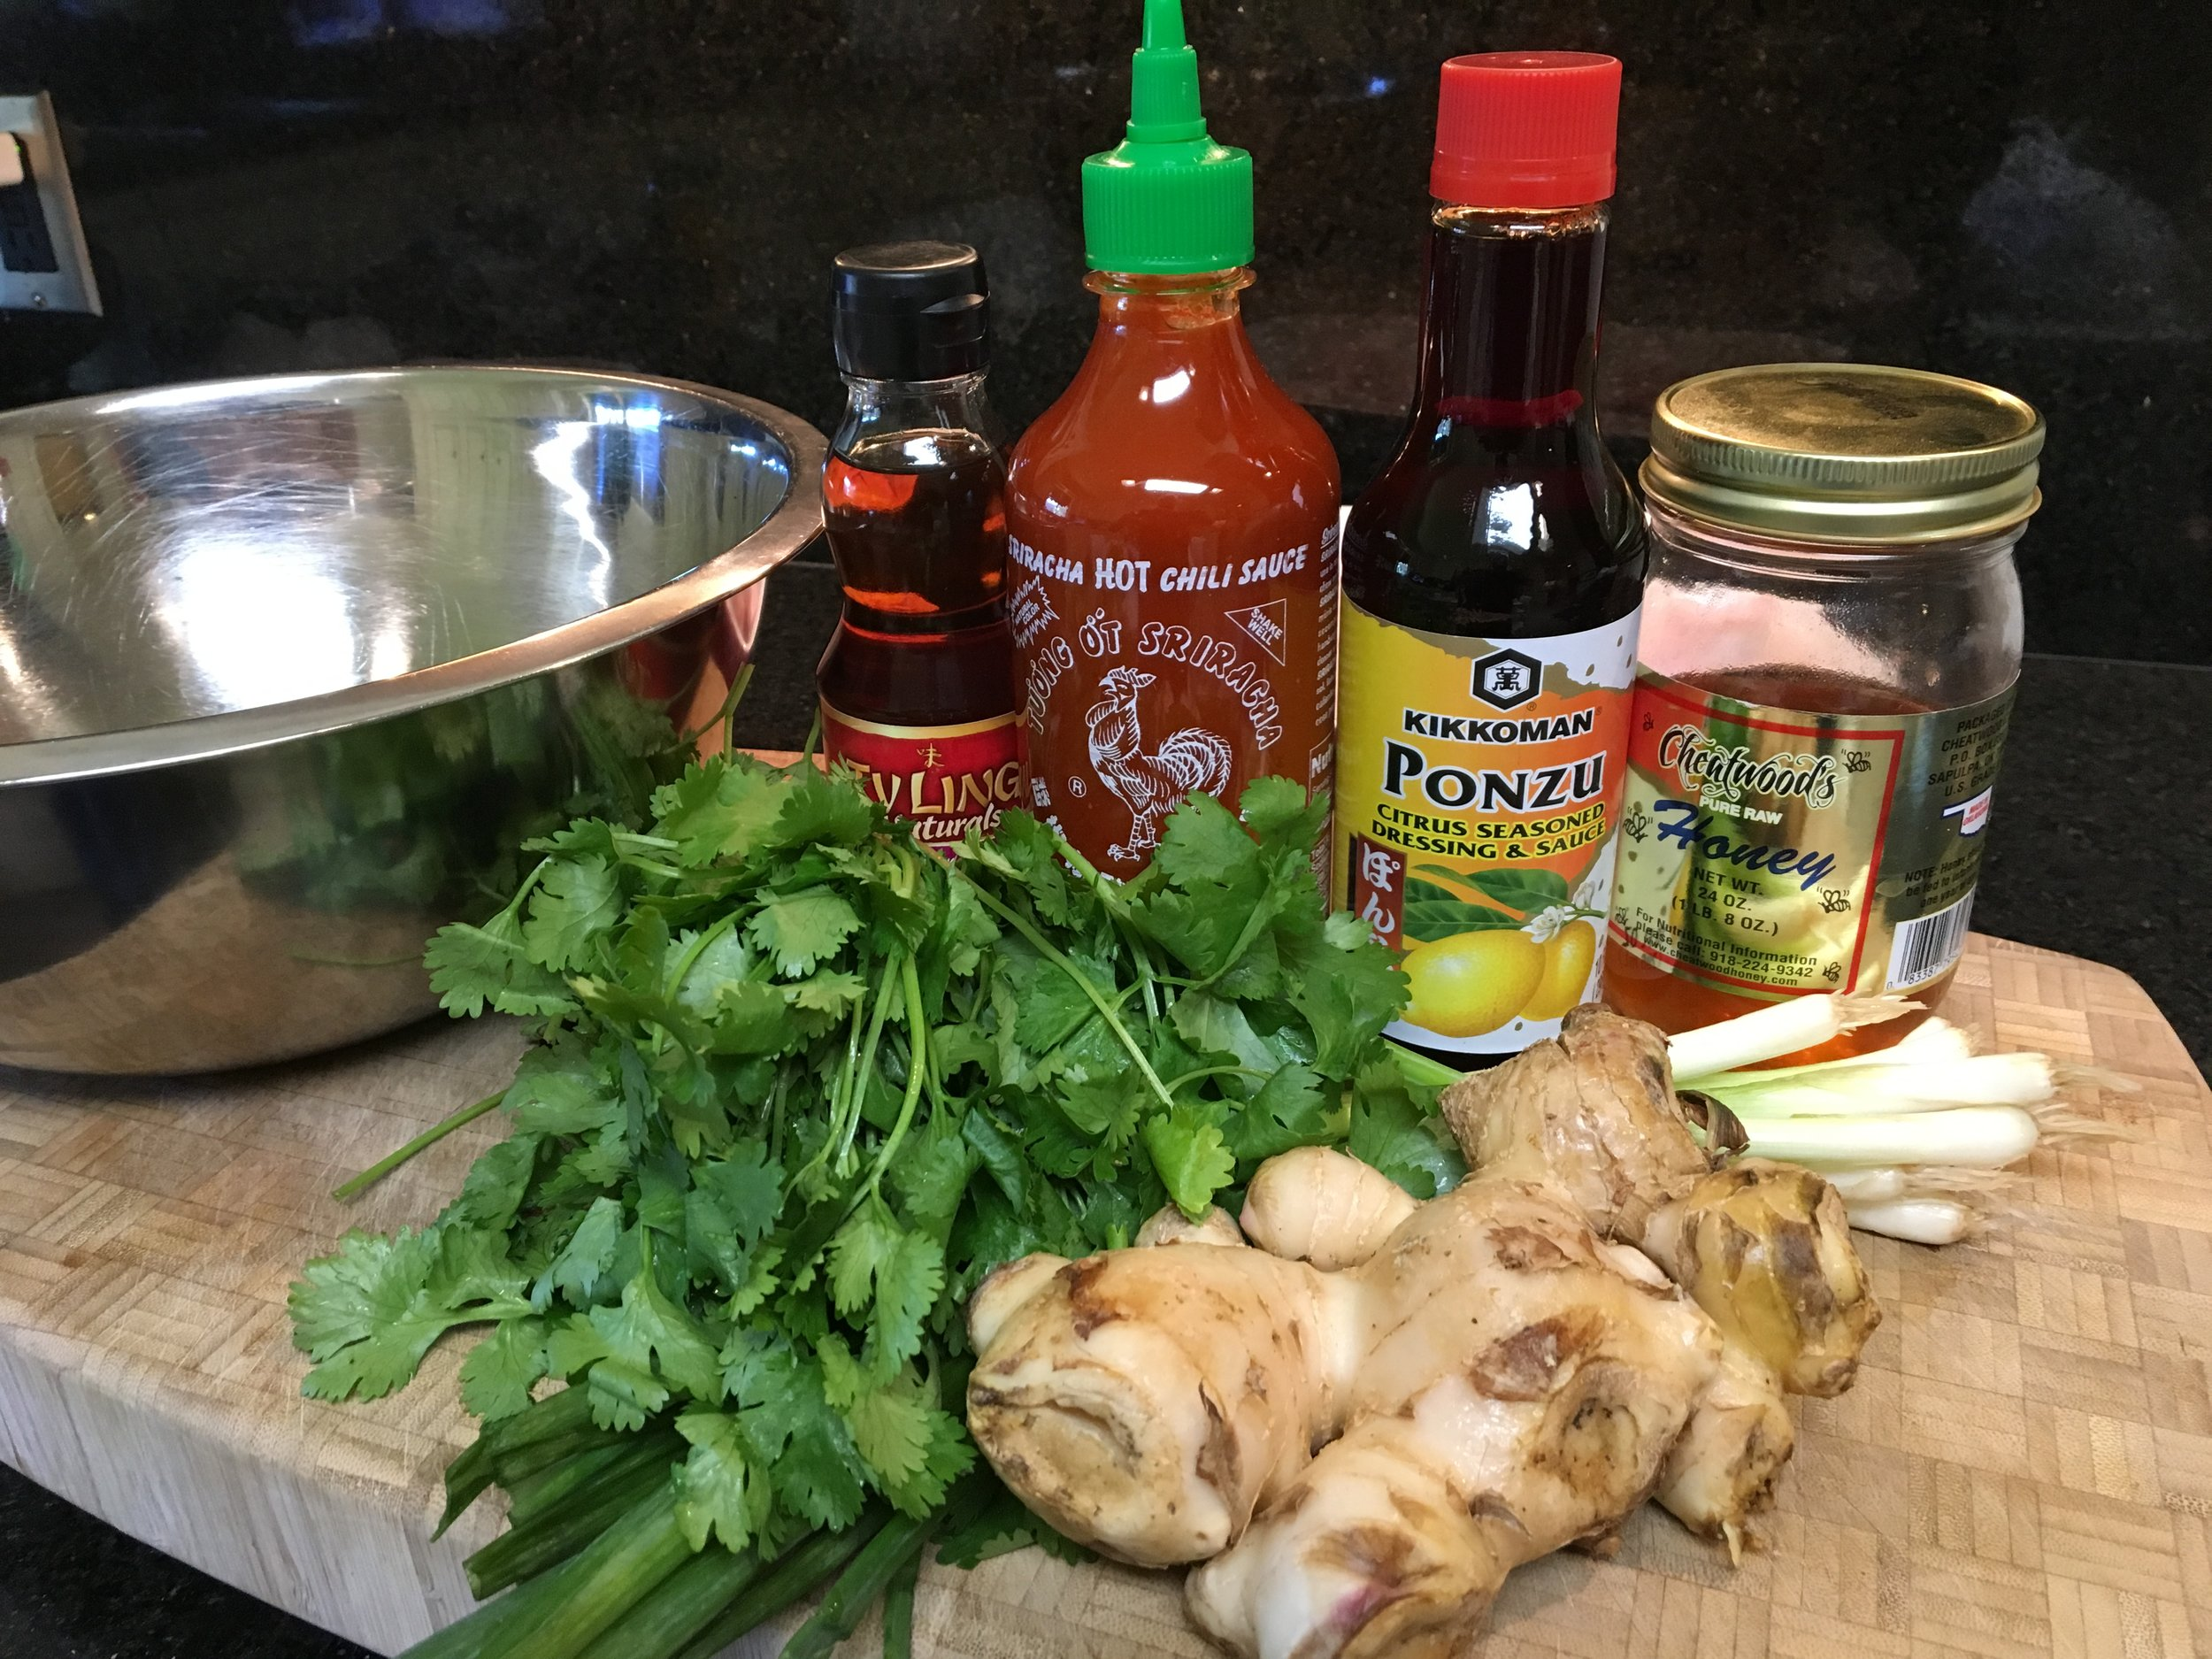 For The Marinade